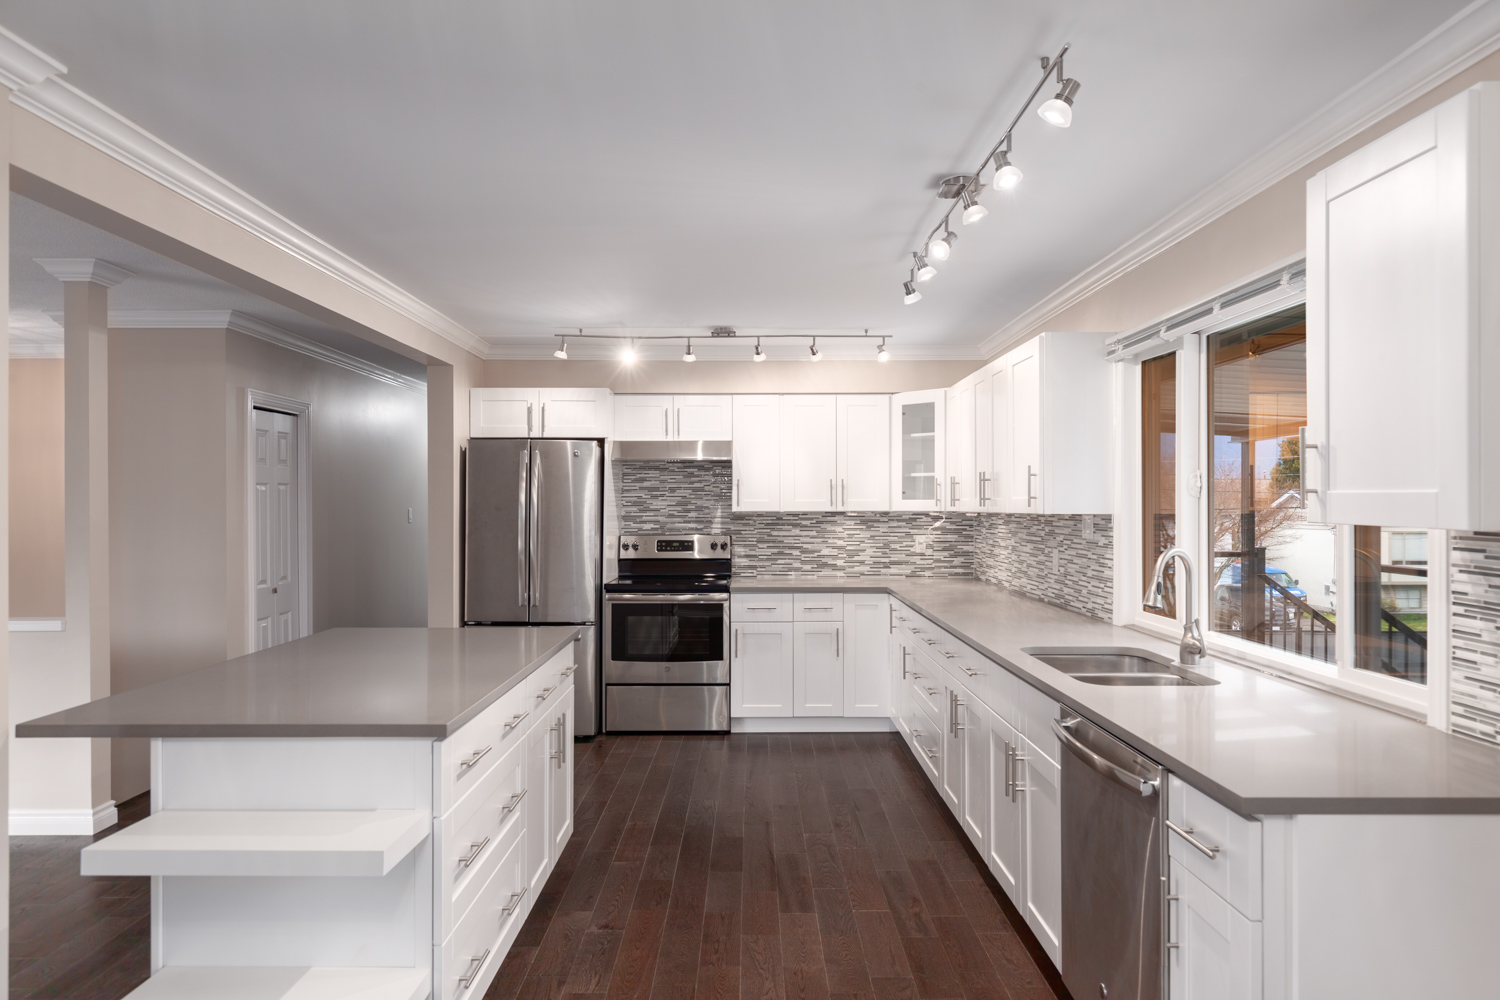 Photo of renovated kitchen